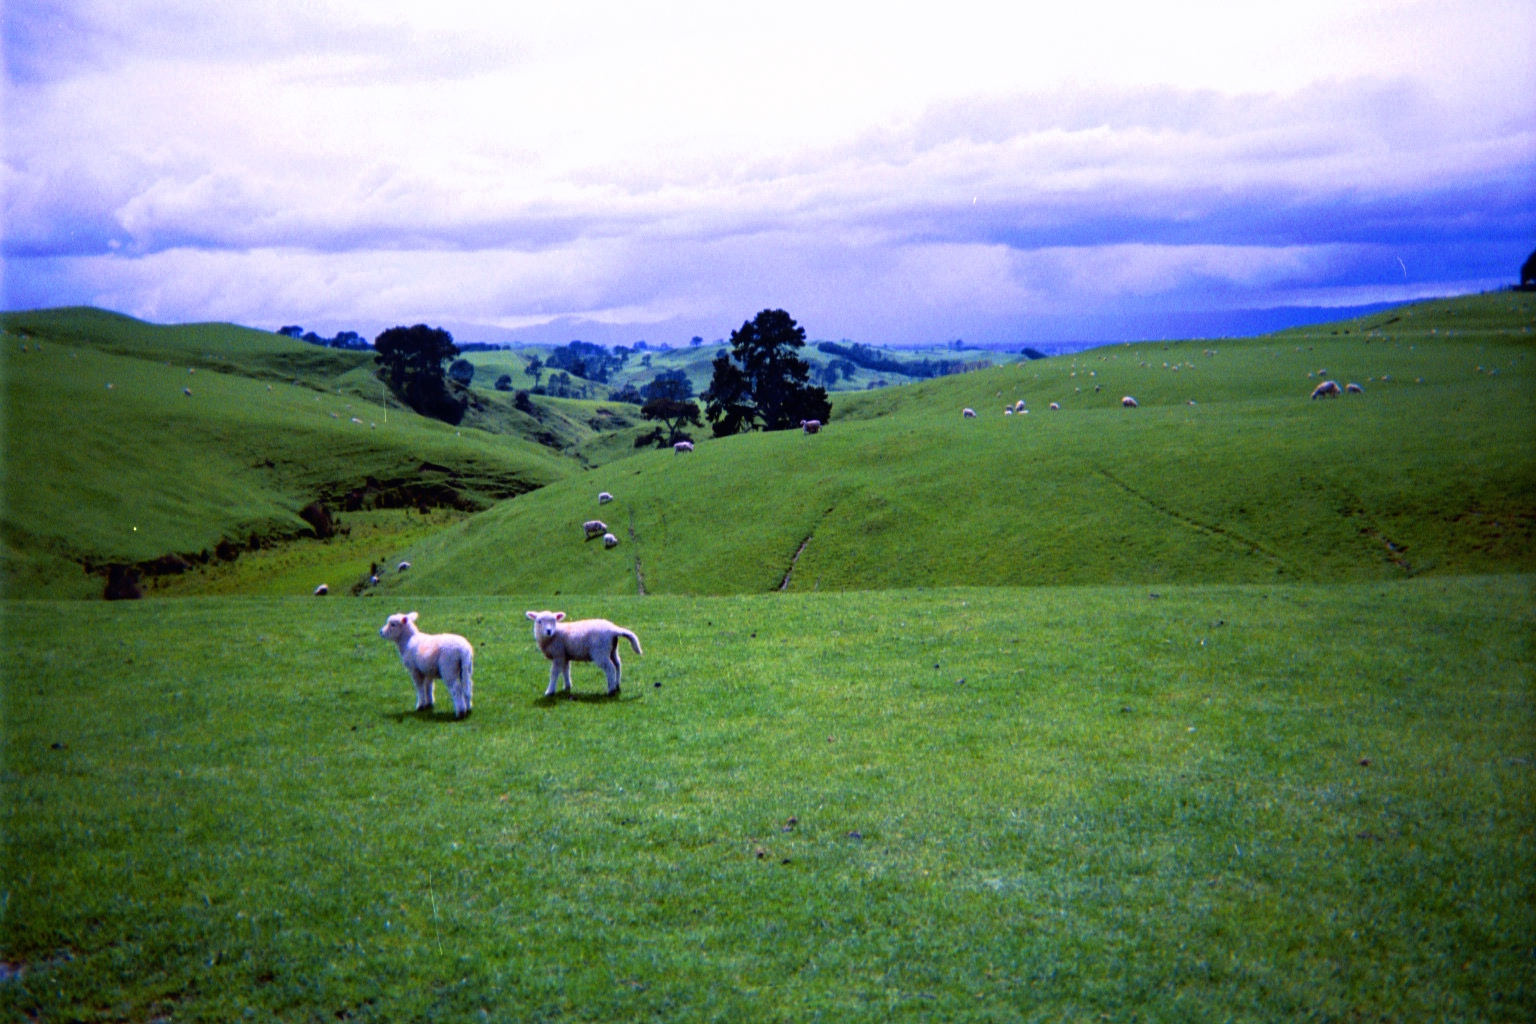 SHEEP IN NEW ZEALAND, 2003